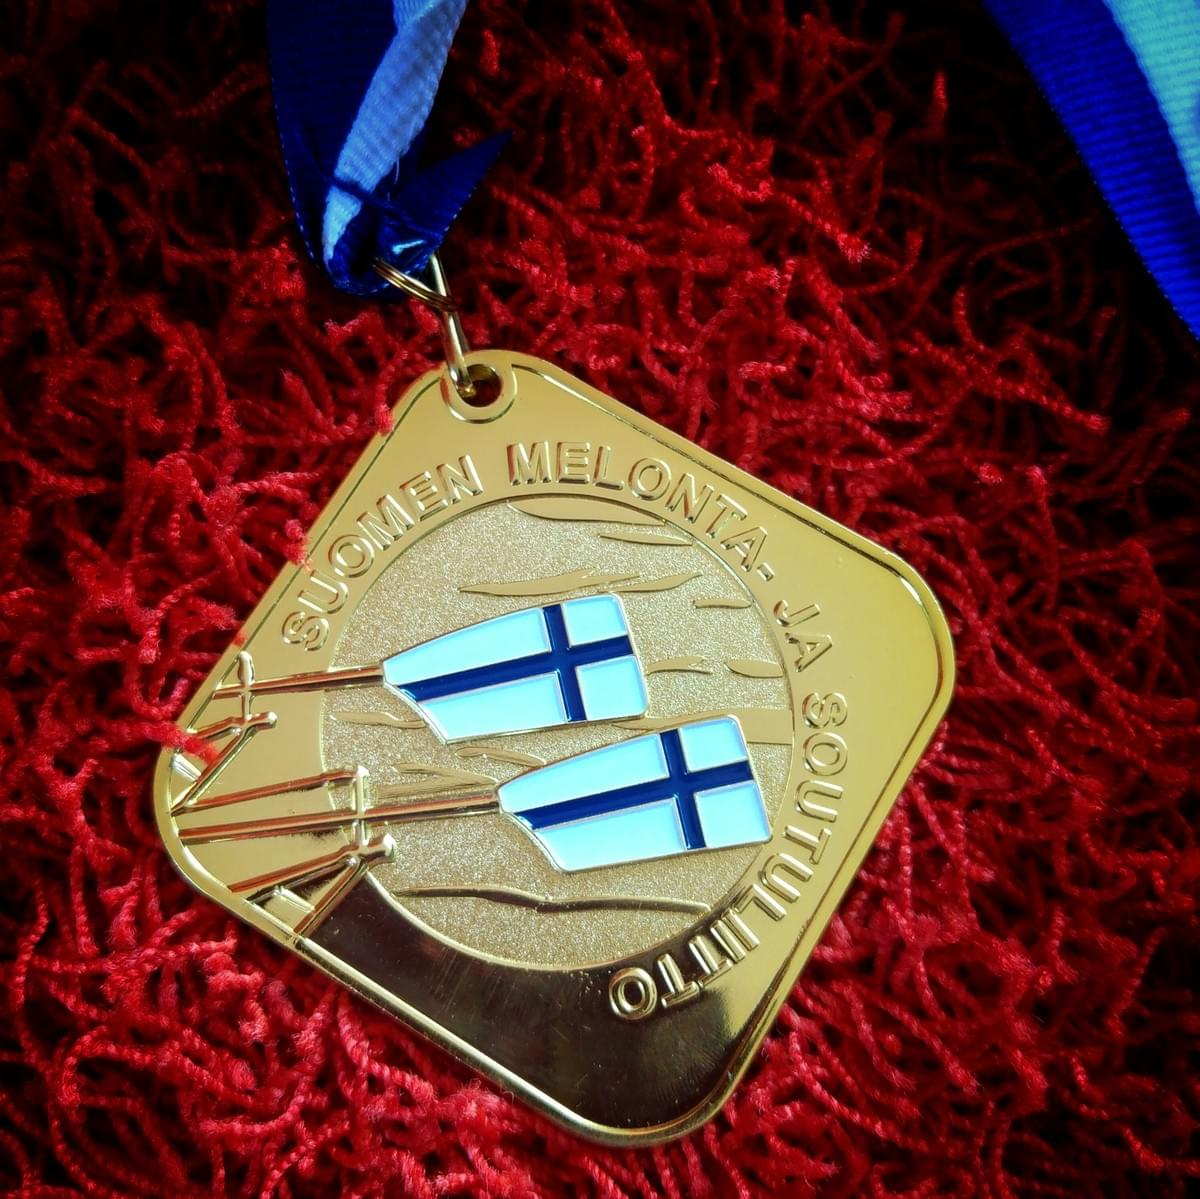 The Finnish championship gold medal!